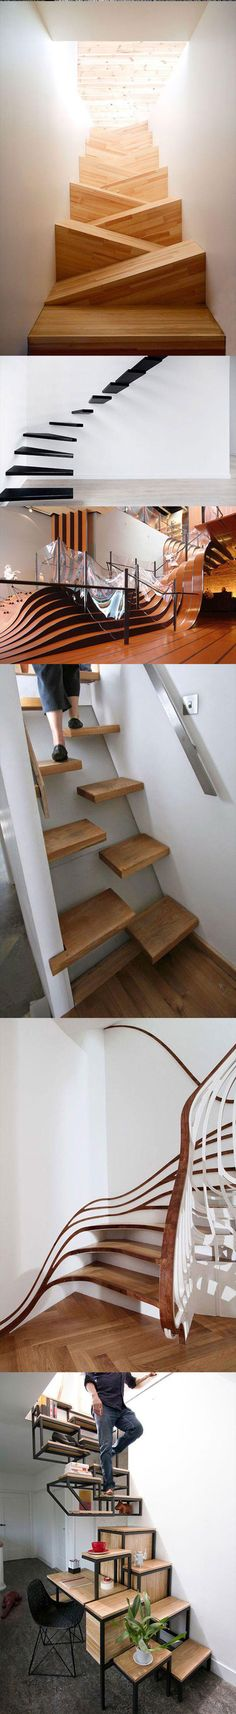 Amazing Stairs Designs. The first one is like an obstacle course and the last is just awesome.